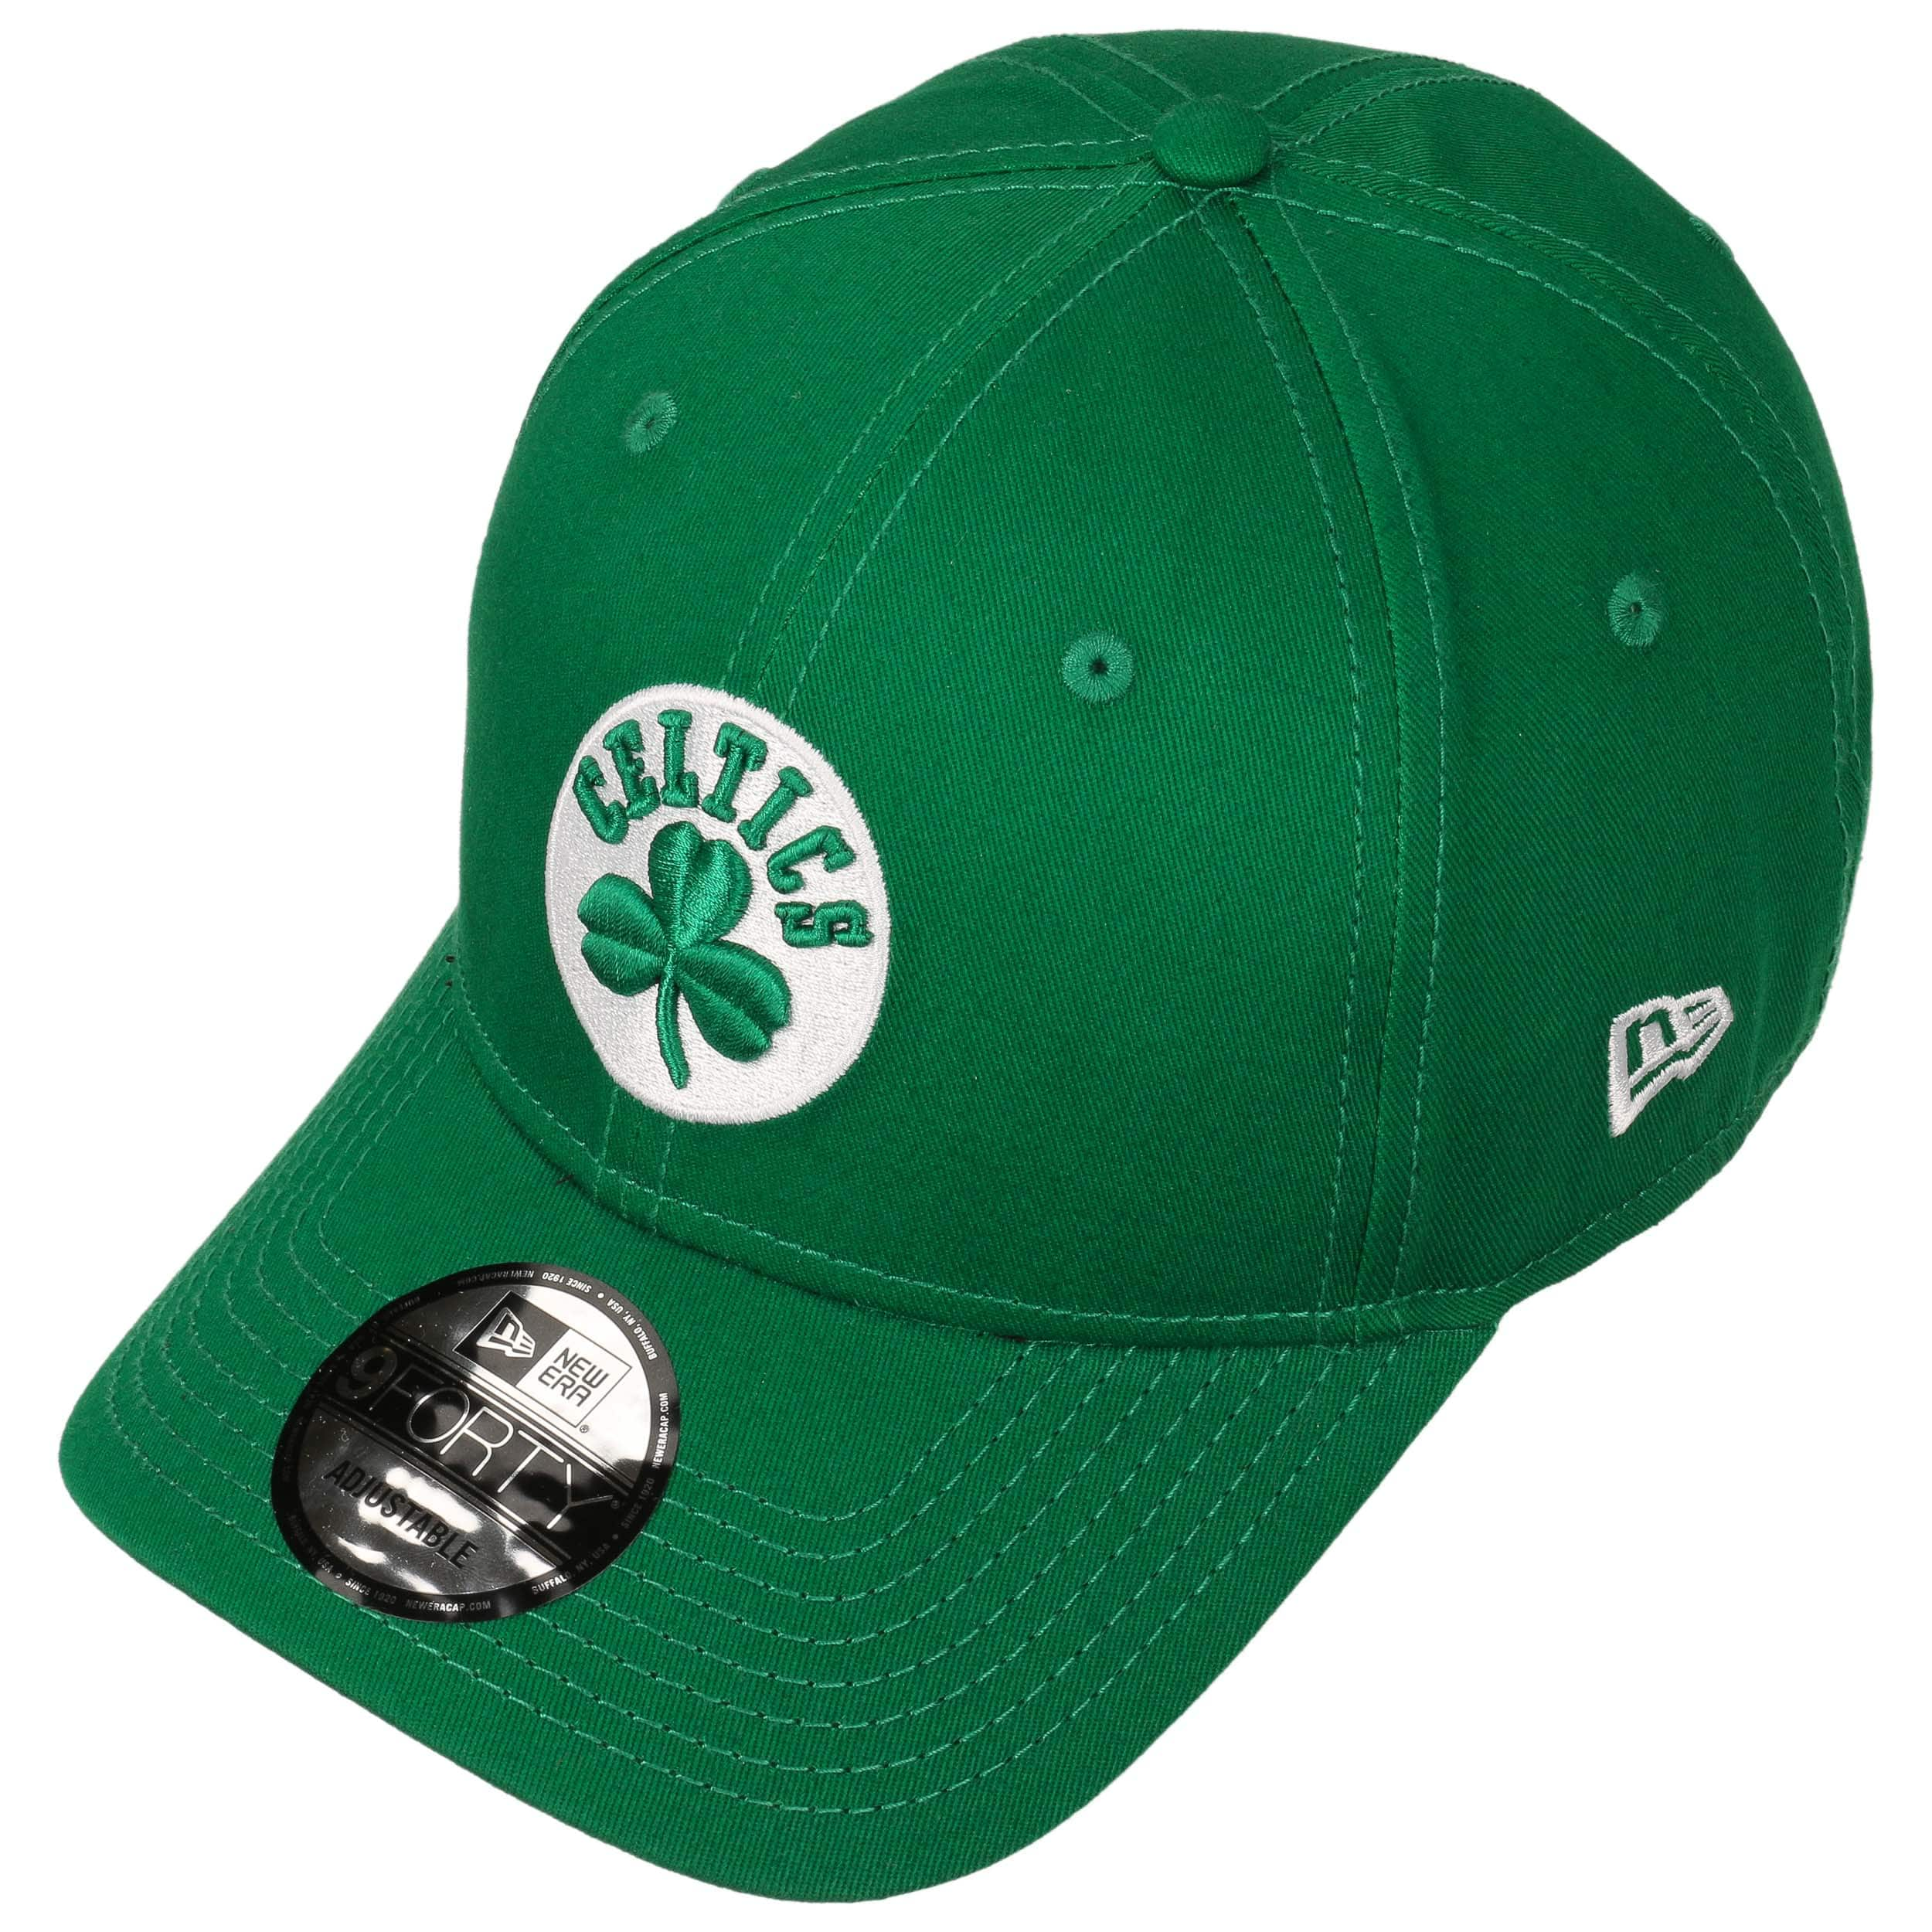 9forty boston celtics cap by new era gbp 20 95 hats caps beanies shop online. Black Bedroom Furniture Sets. Home Design Ideas